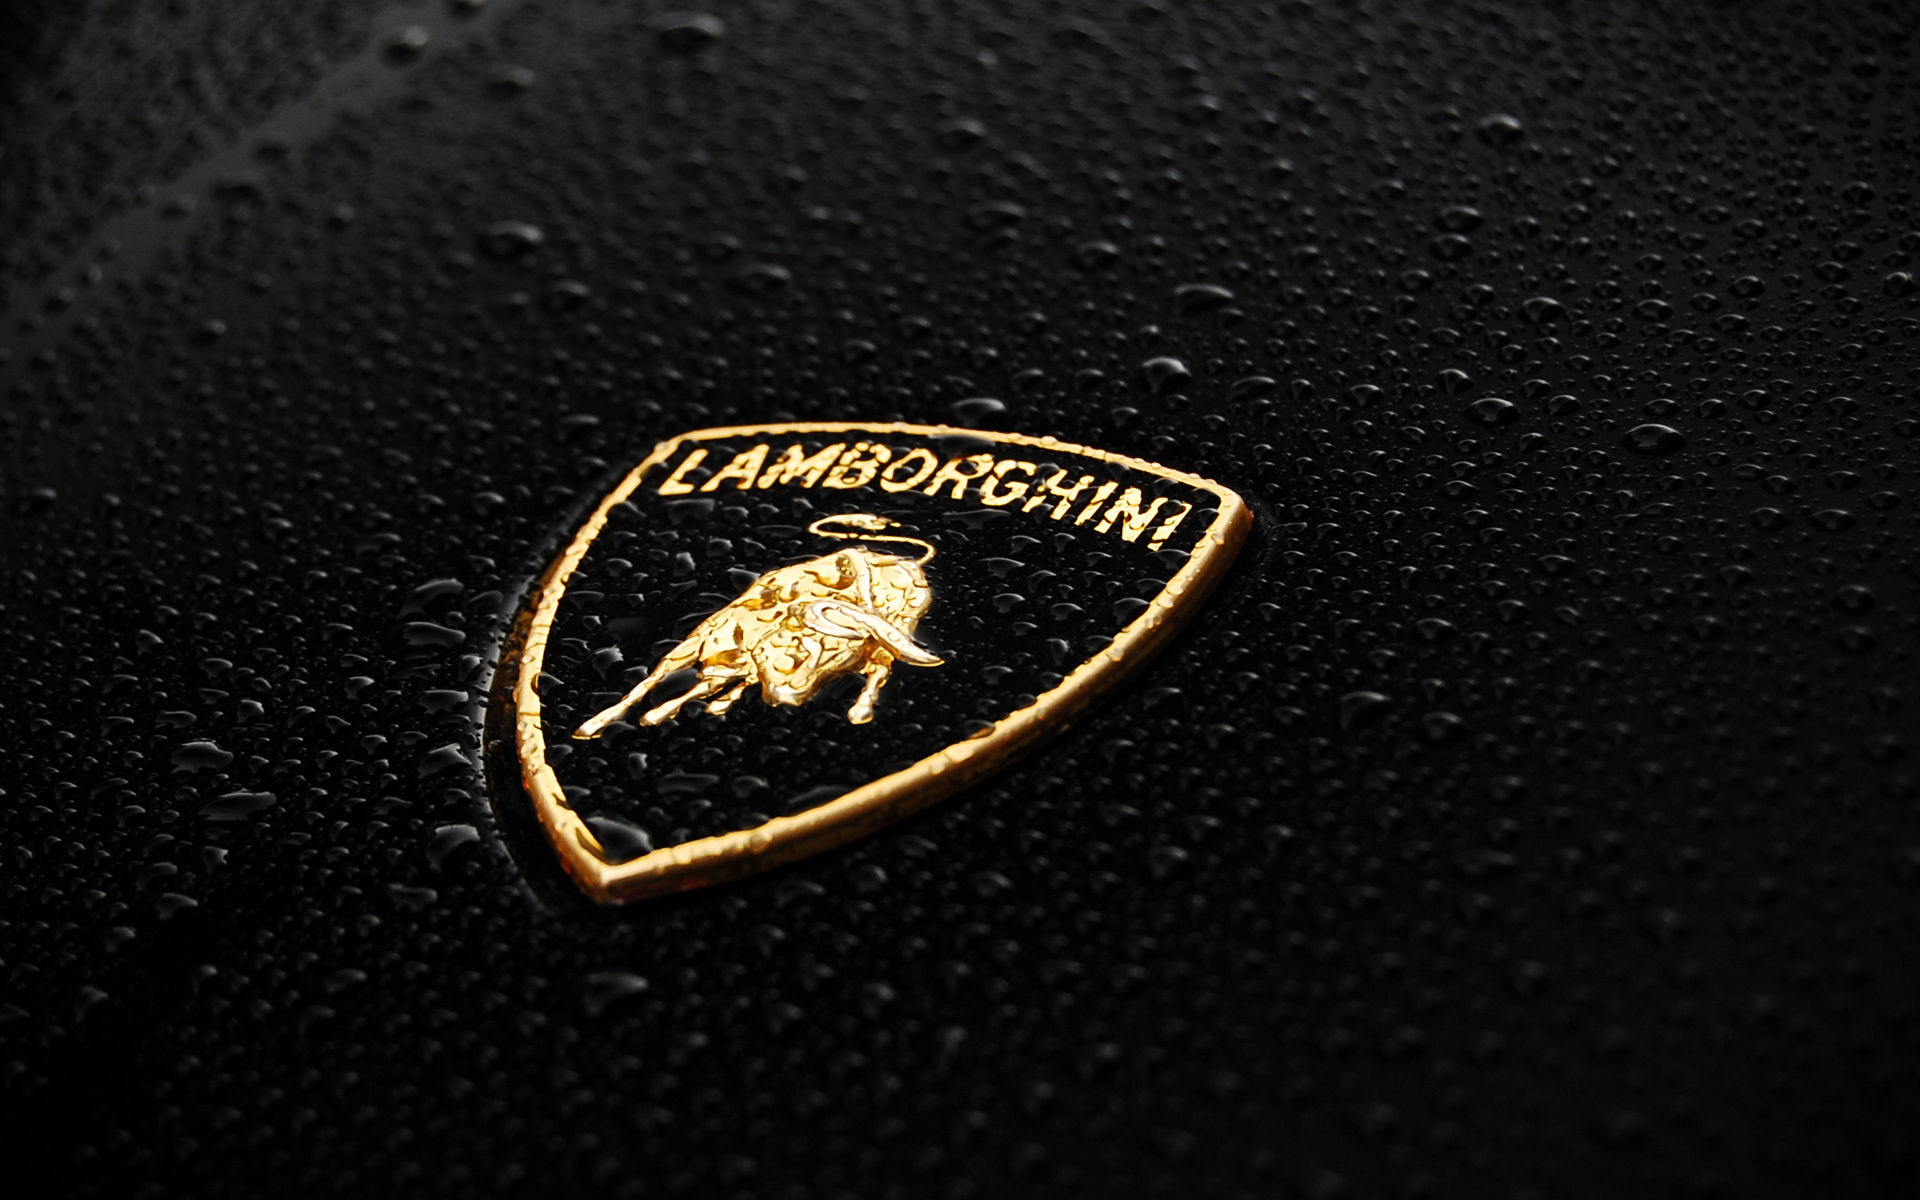 Awesome Lamborghini Logo Water Car Picture Image HD Wallpaper